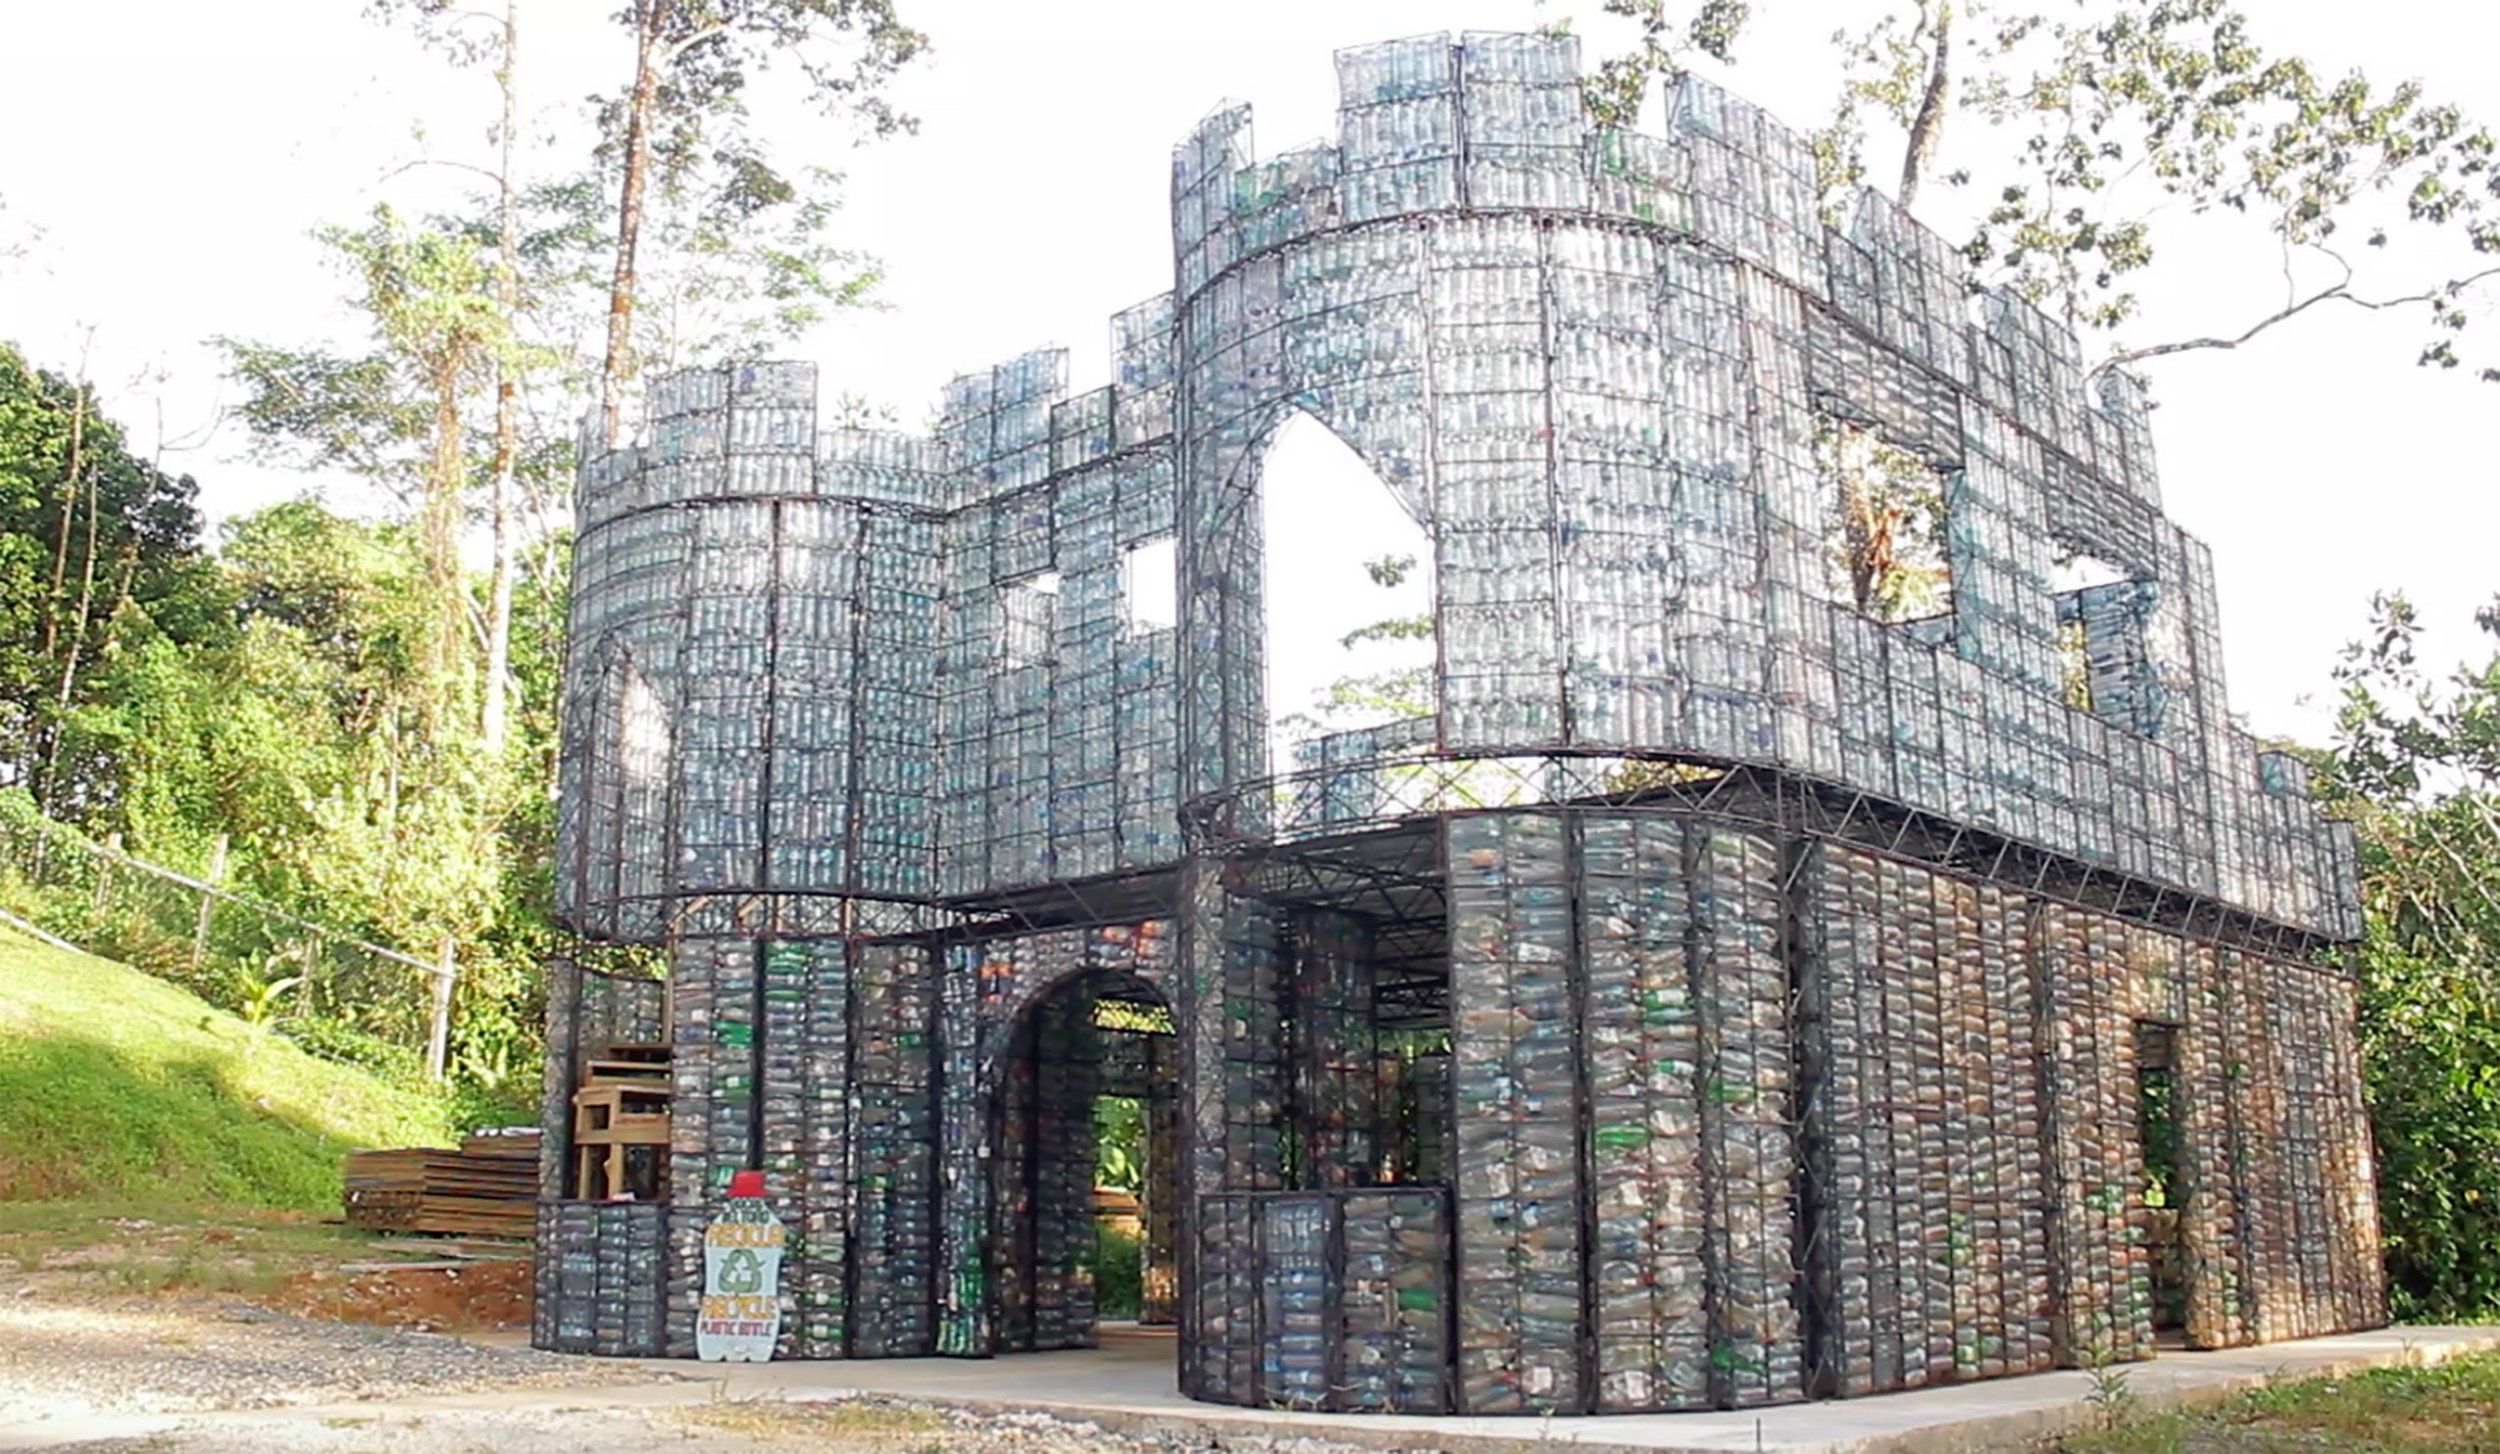 A village made entirely out plastic bottles is being built in Panama